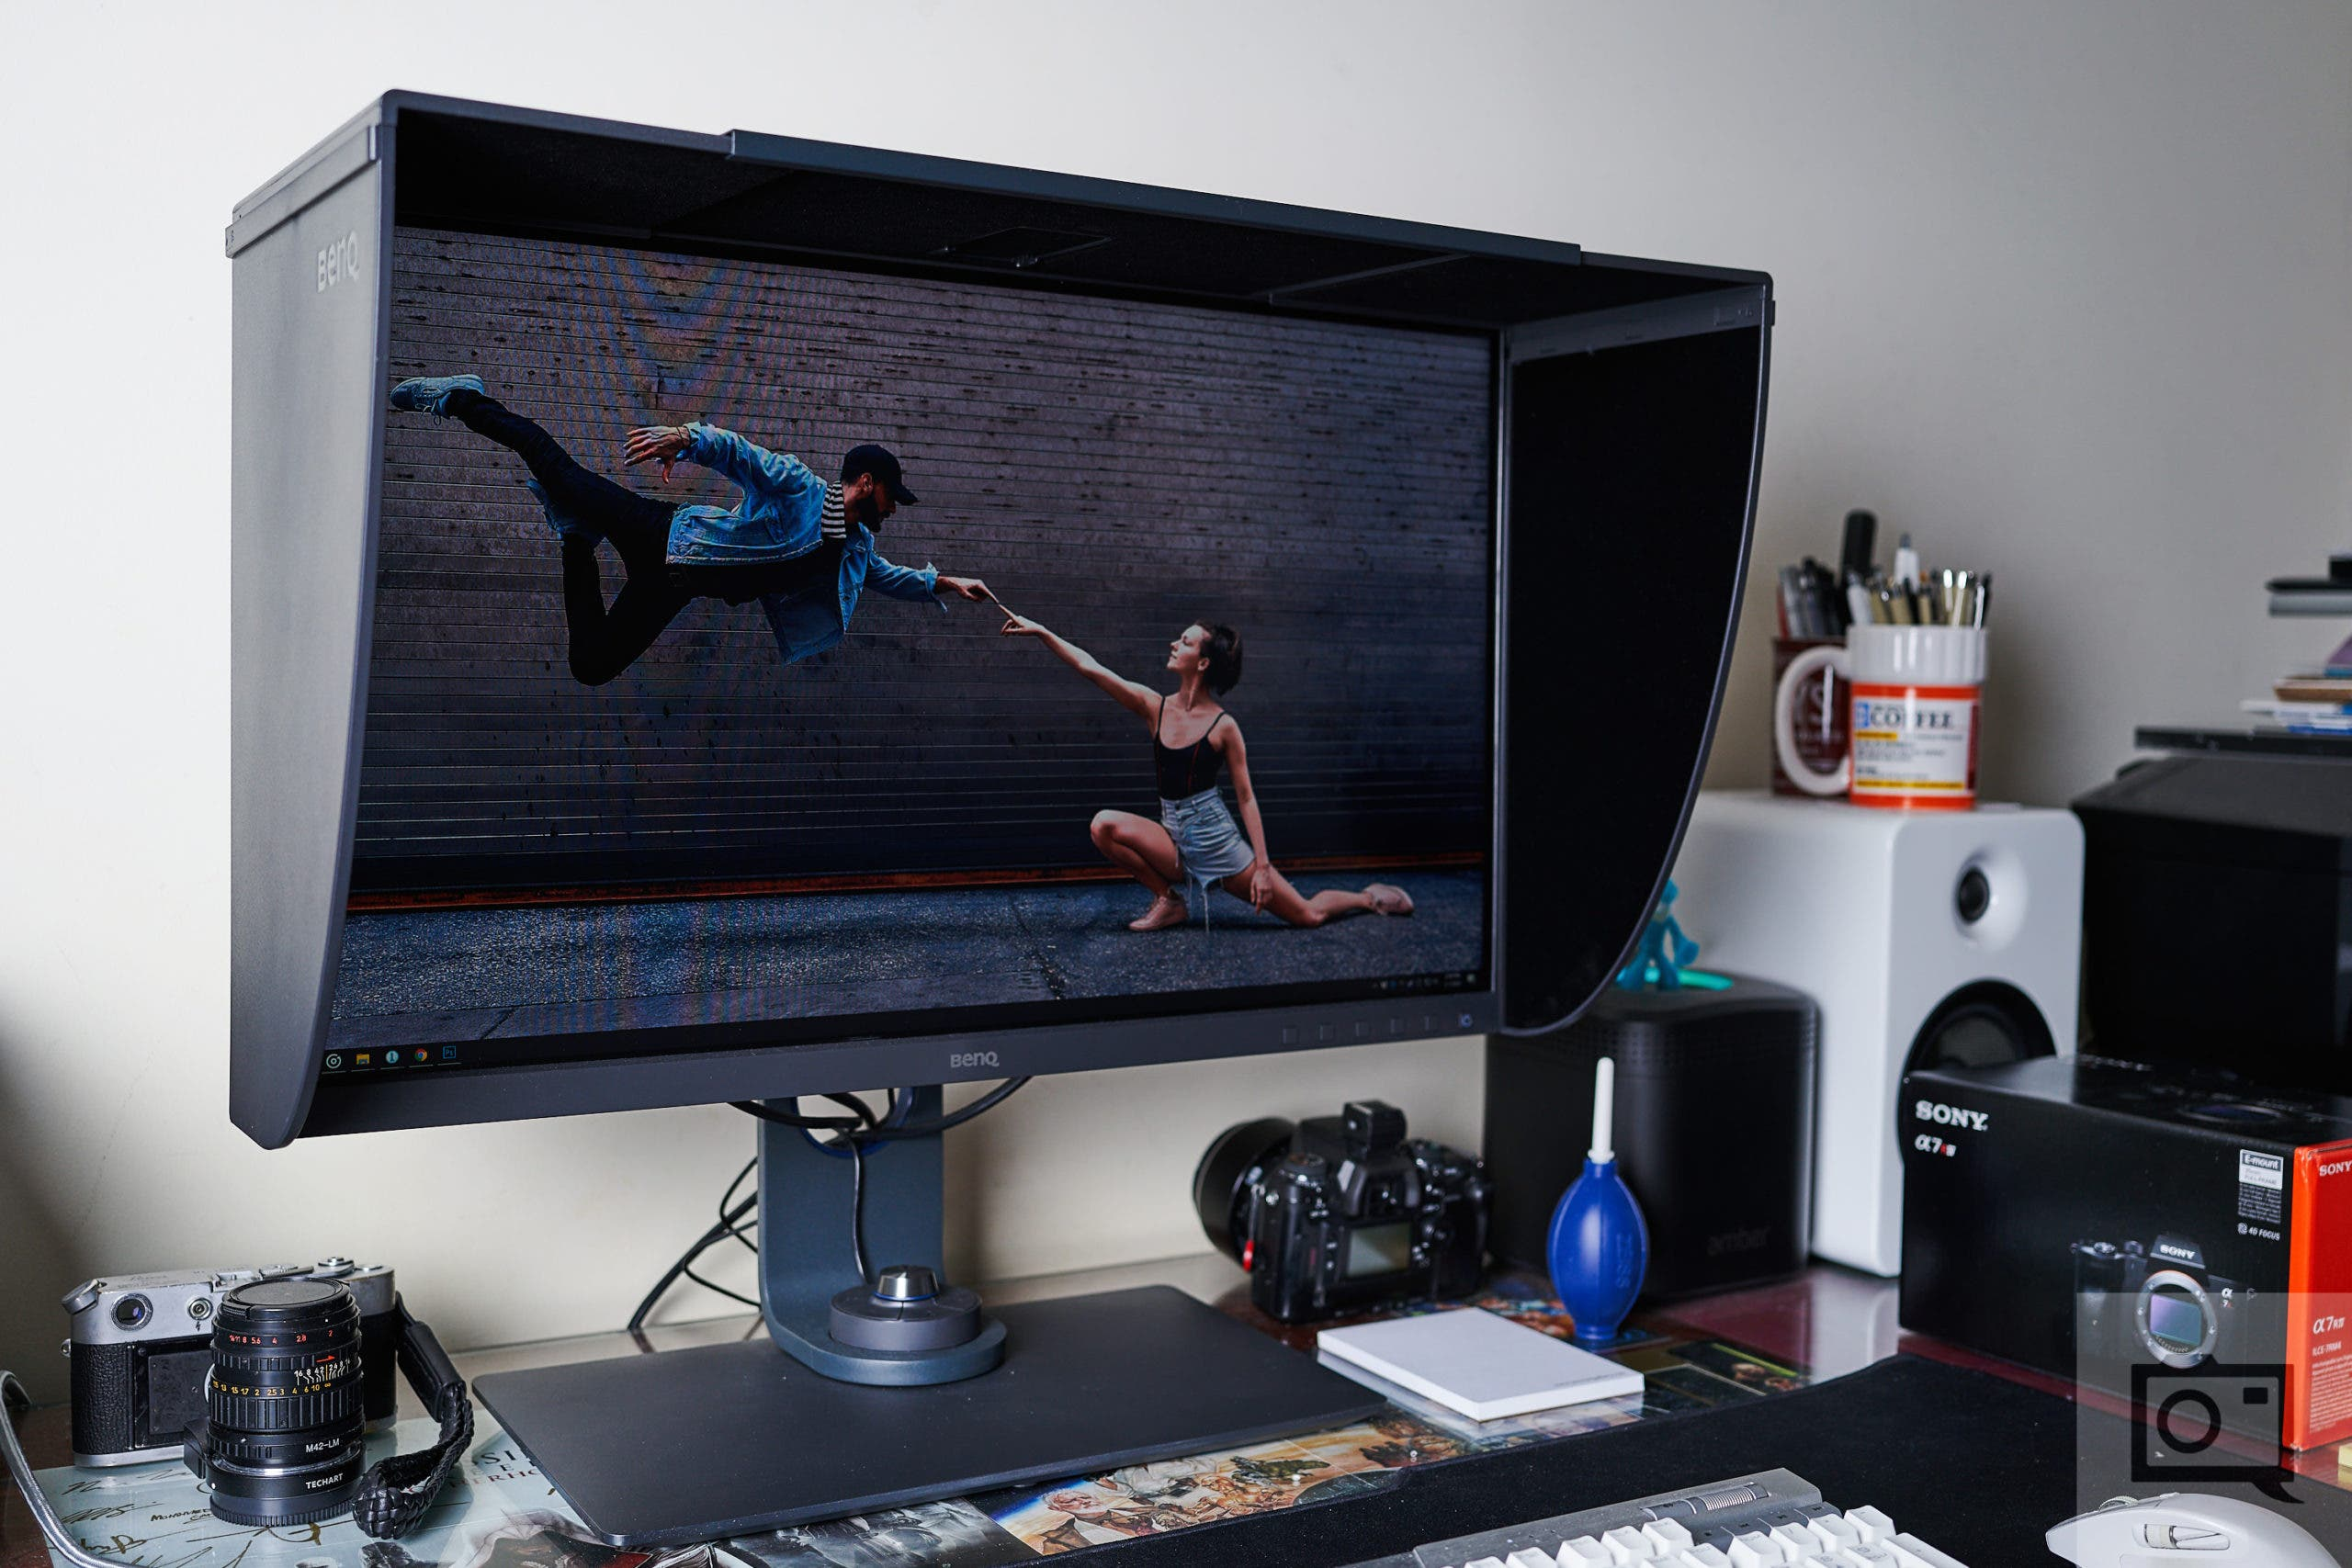 Monitor Review: BenQ SW270C 27 Inch Monitor for Photographers